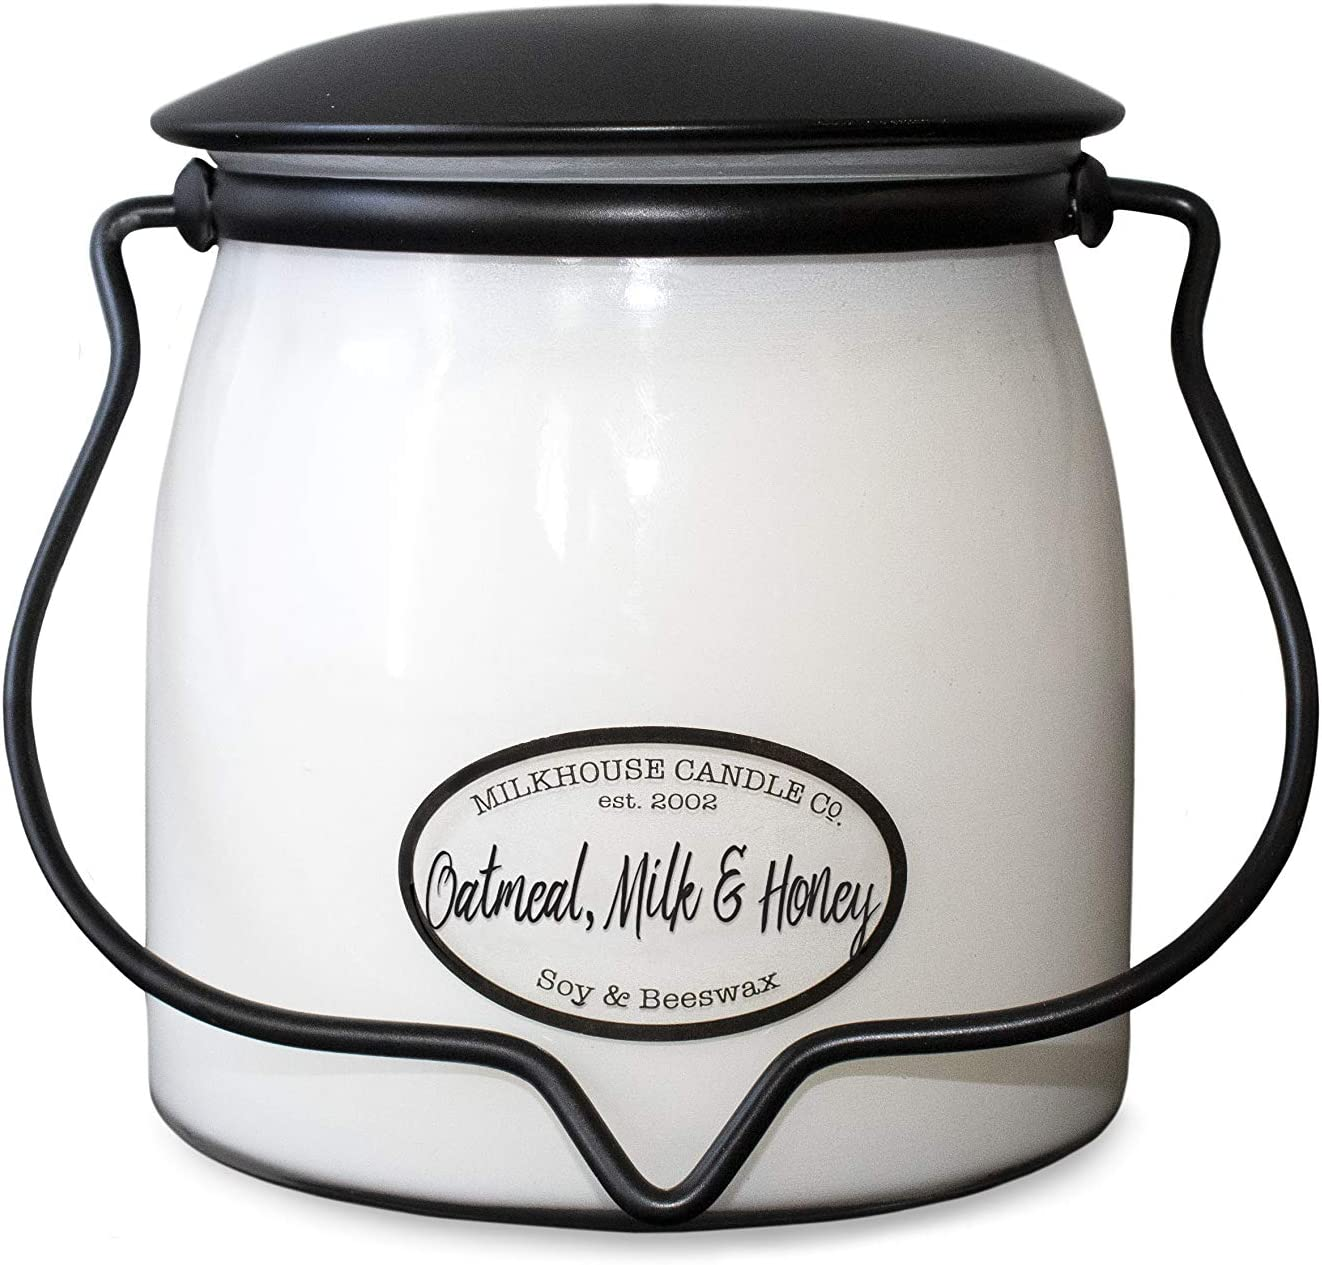 Milkhouse Candle Company, Creamery Scented Soy Candle: Butter Jar Candle, Oatmeal, Milk & Honey, 16-Ounce